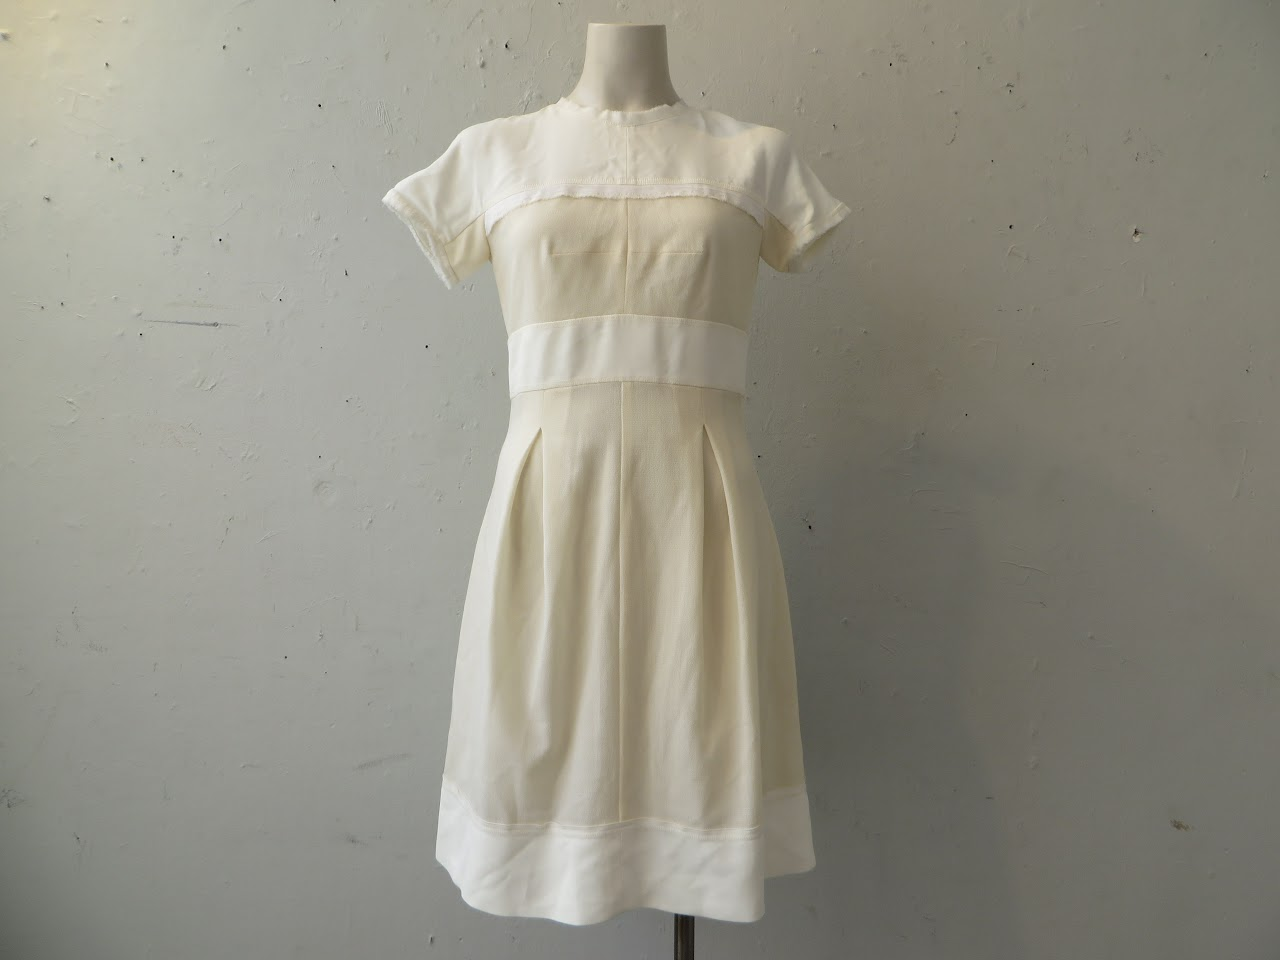 Amelia Toro Shades of White Dress